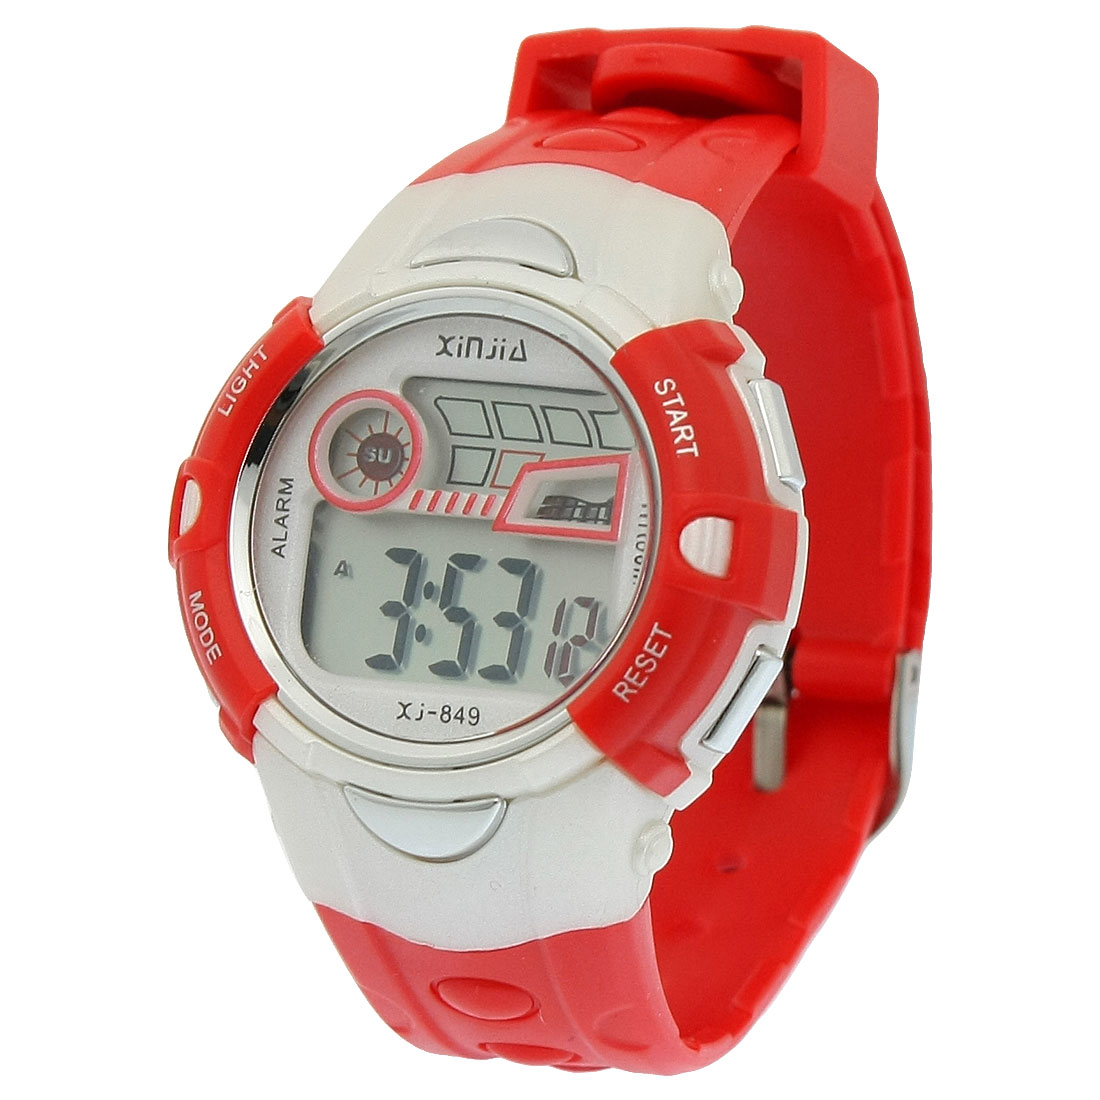 Red Plastic Adjustable Wristband Chronograph Sports Watch for Children